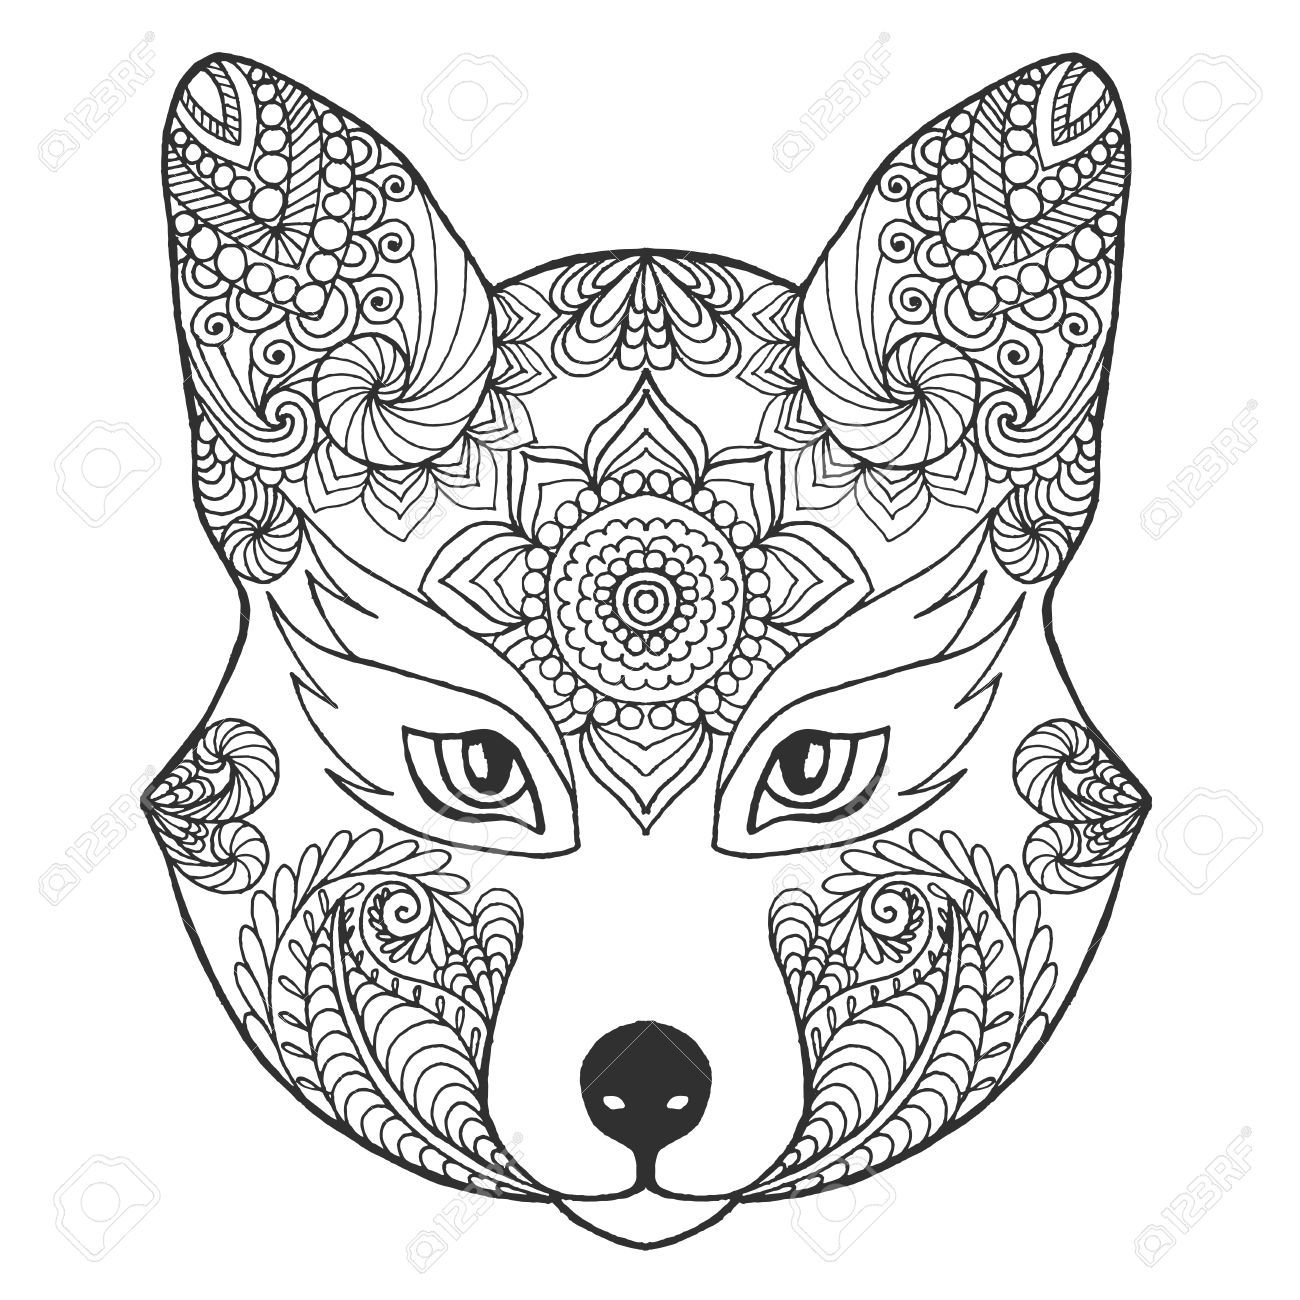 1300x1300 Fox Head Black White Hand Drawn Doodle Animal Ethnic Patterned